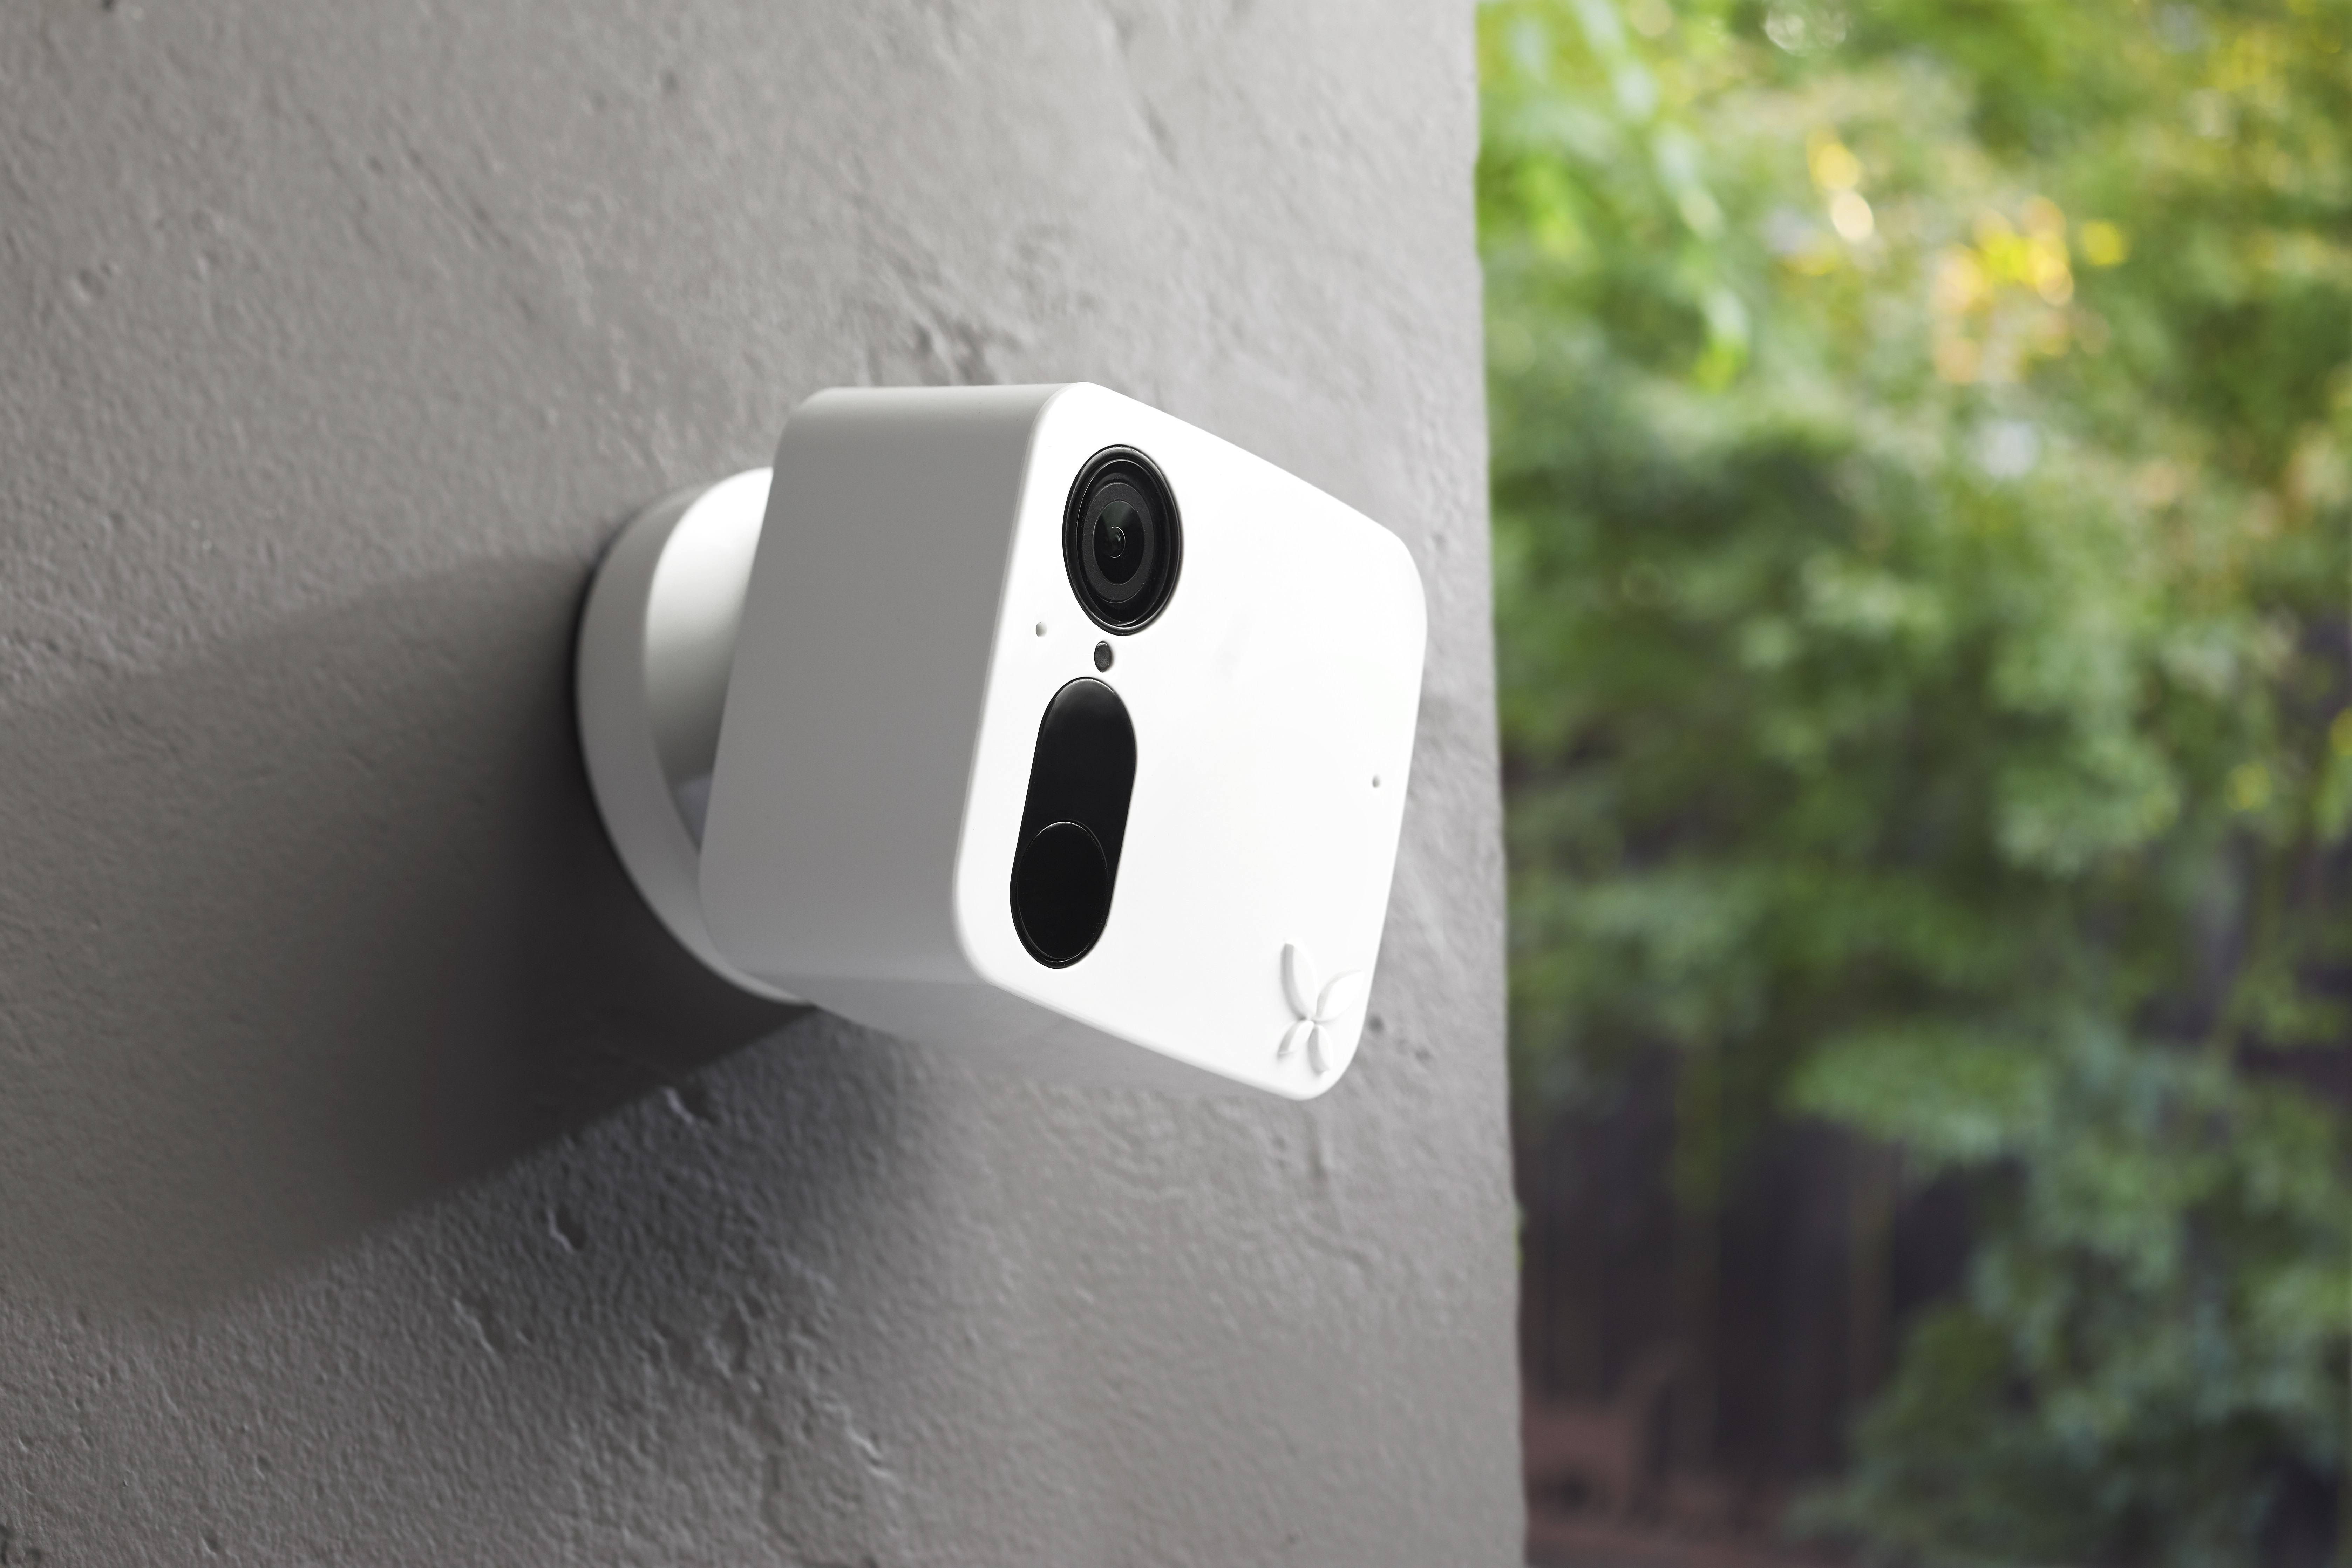 The Airbnb Host's Guide to Smart Cameras - blog post image